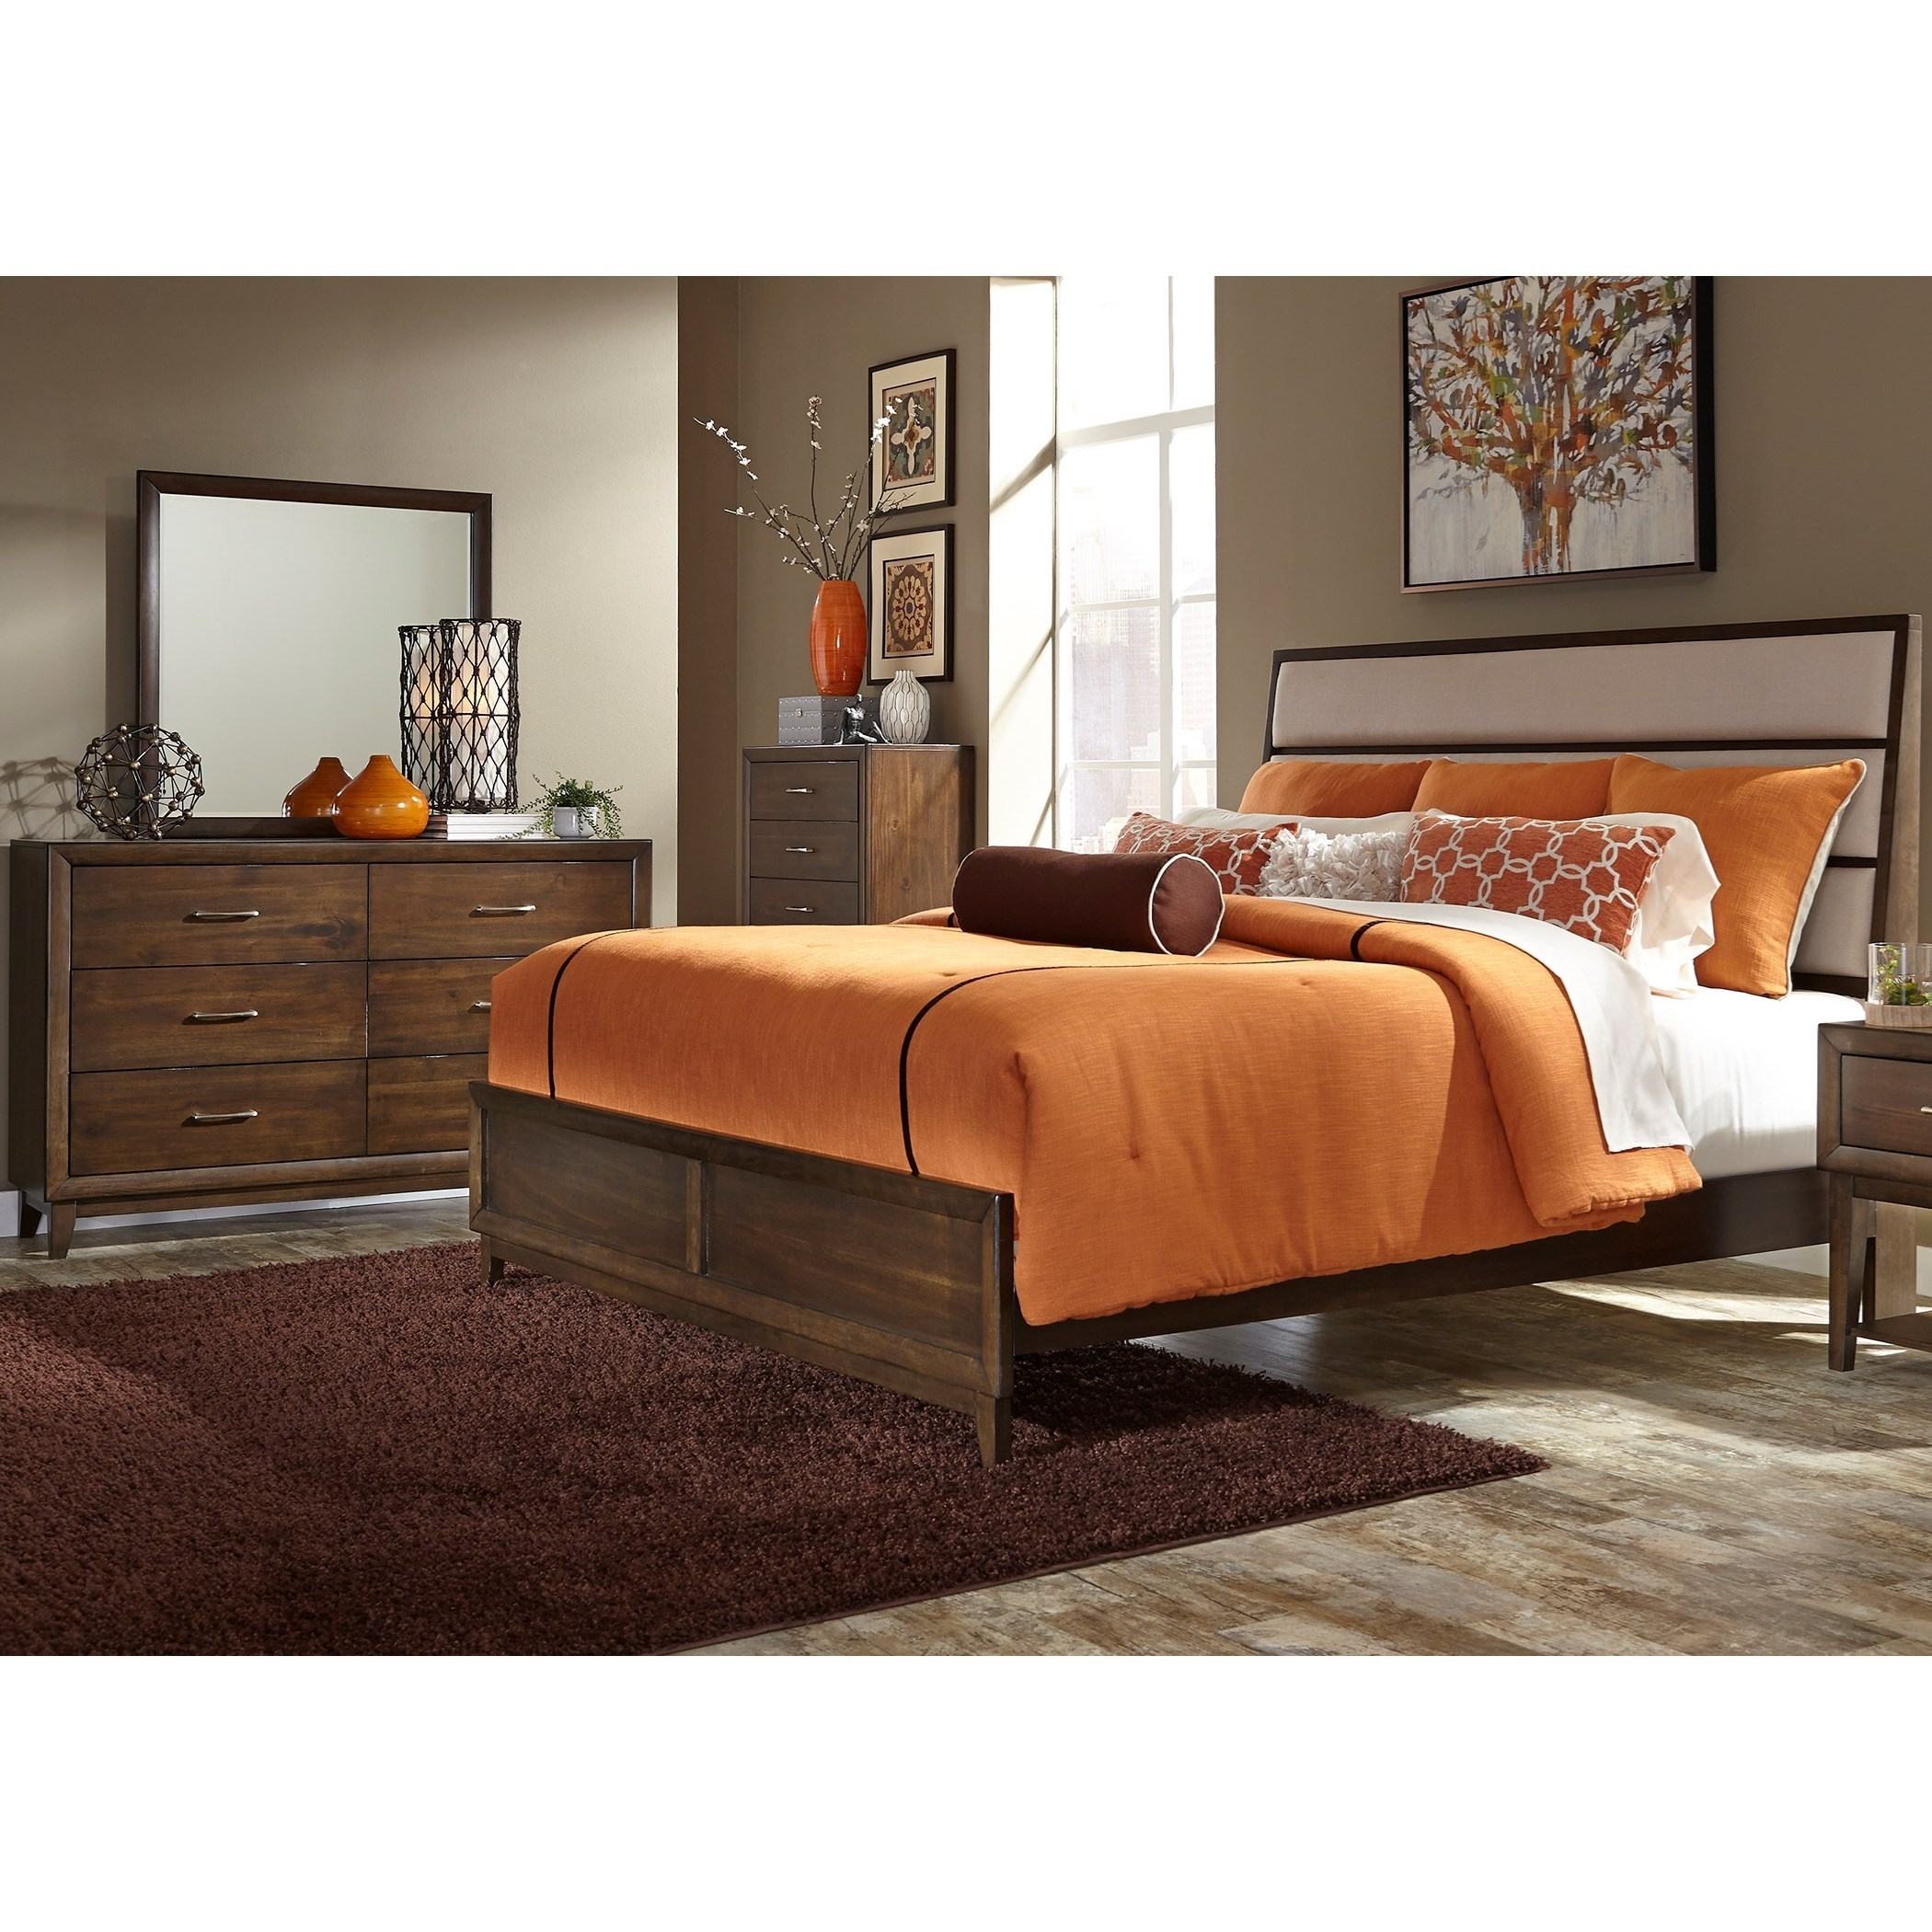 Great Hudson Square Bedroom King Bedroom Group By Liberty Furniture